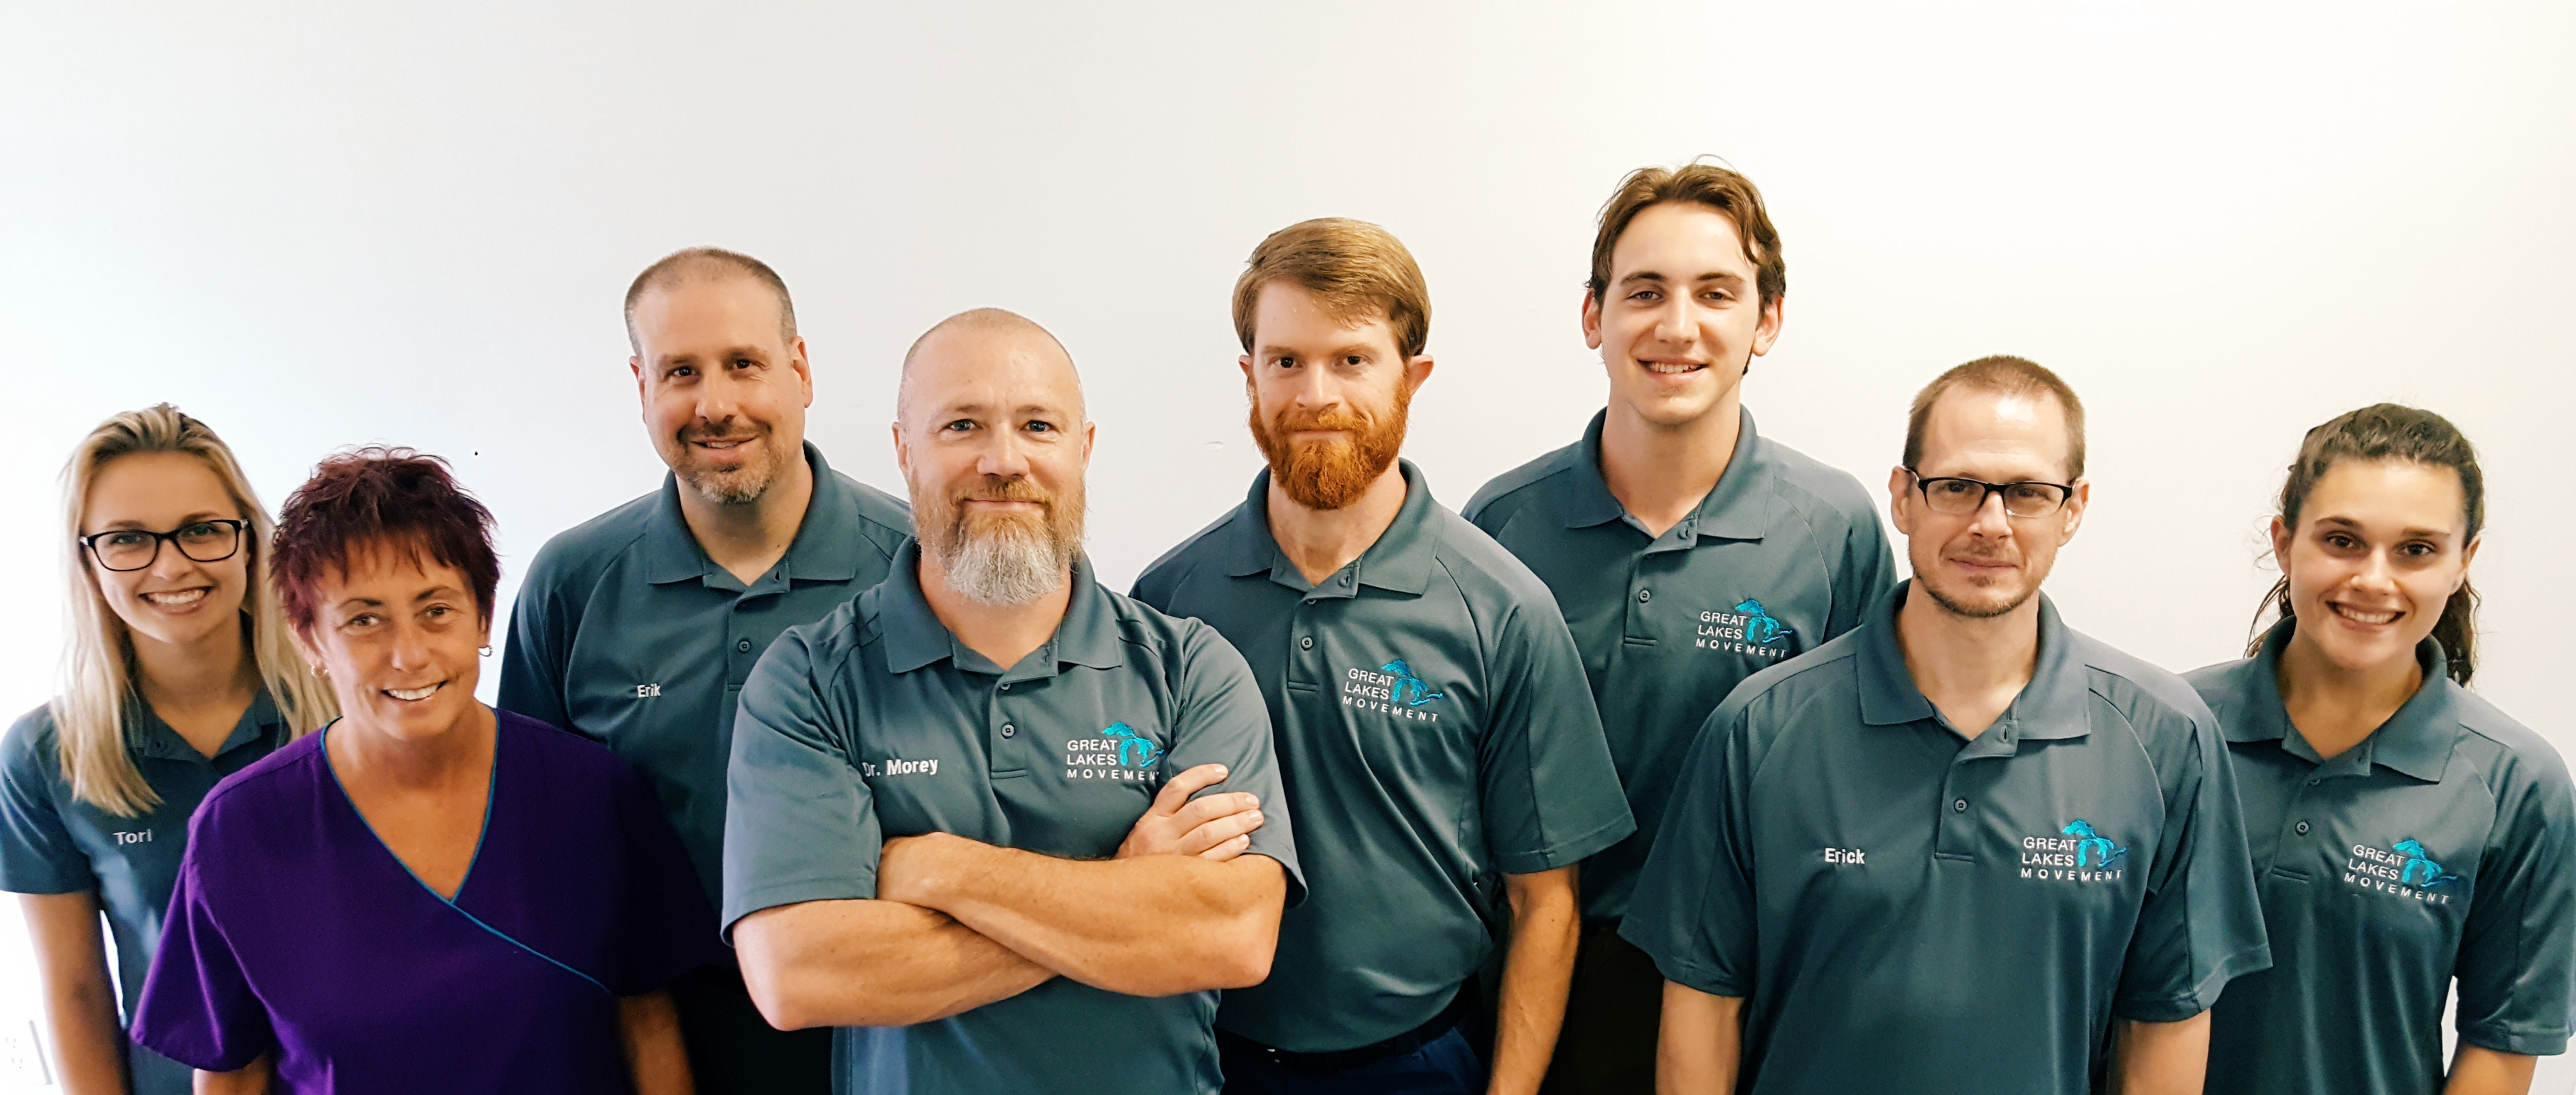 Meet The Staff of Great Lakes Chiropractic & Movement Center, Flint, Michigan